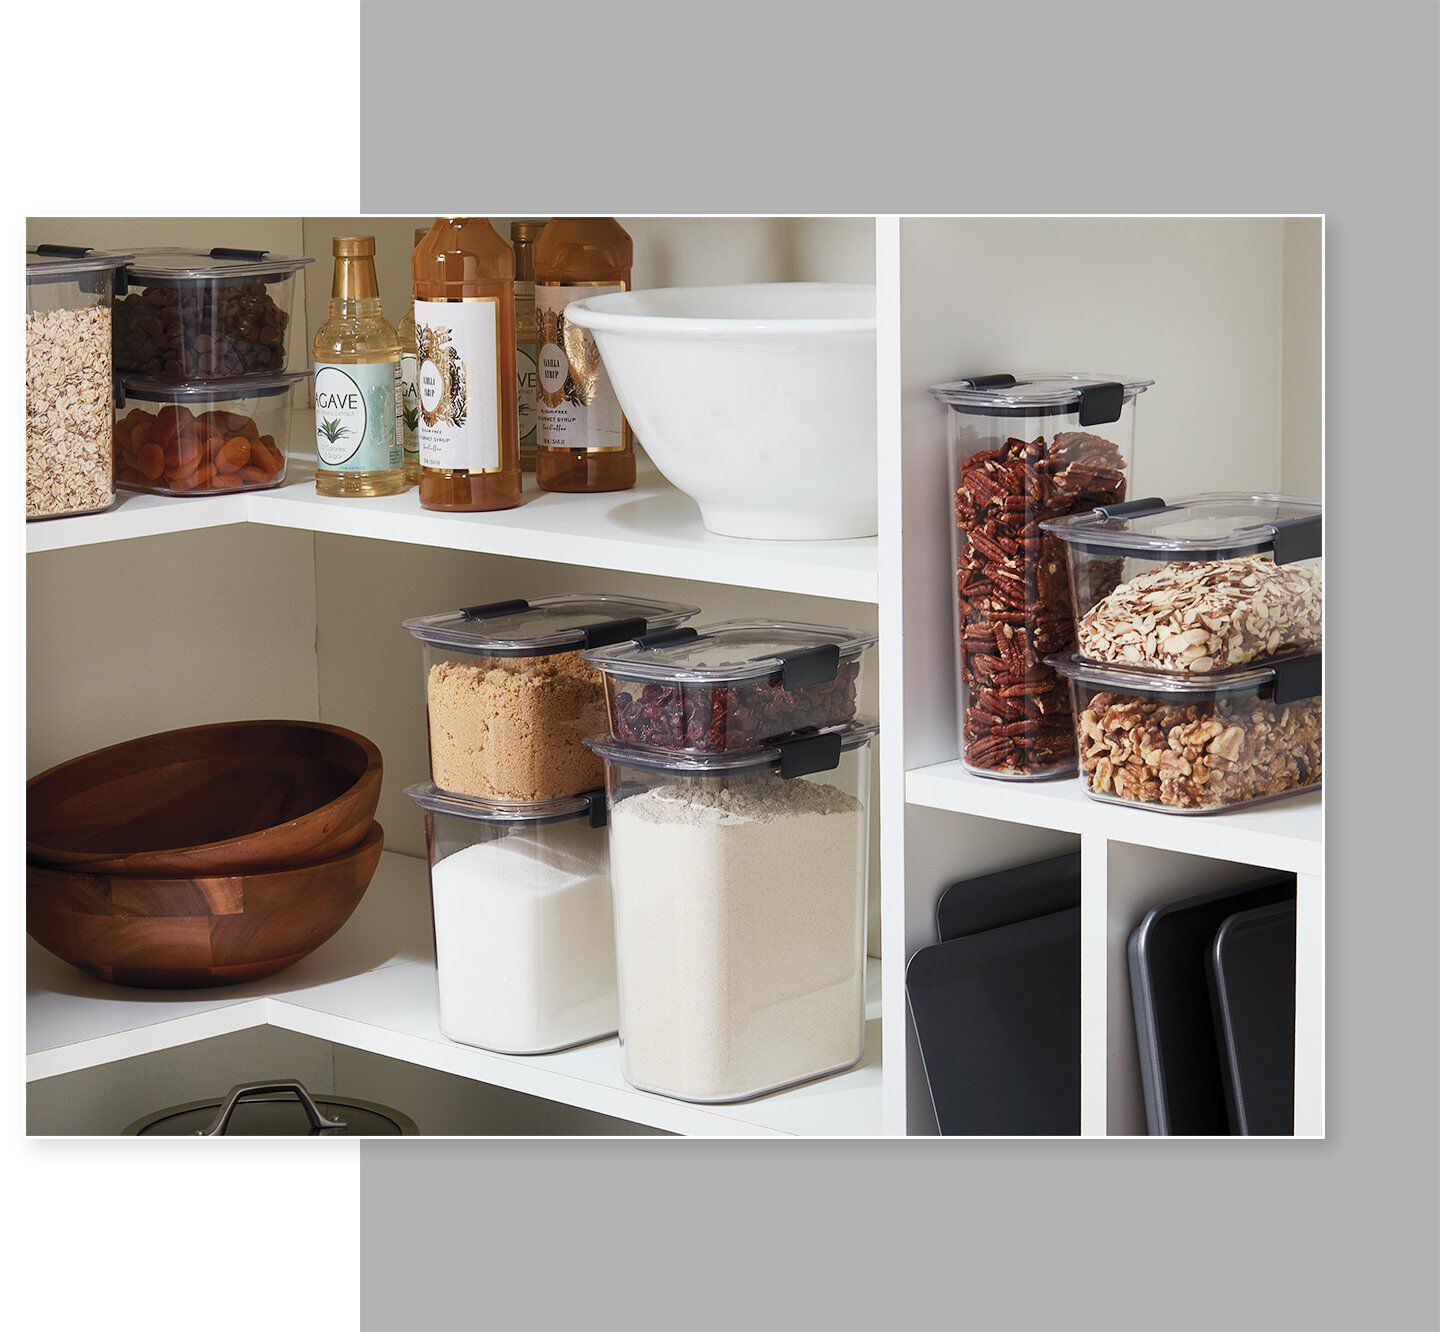 Rubbermaid brilliance pantry food storage containers stacked